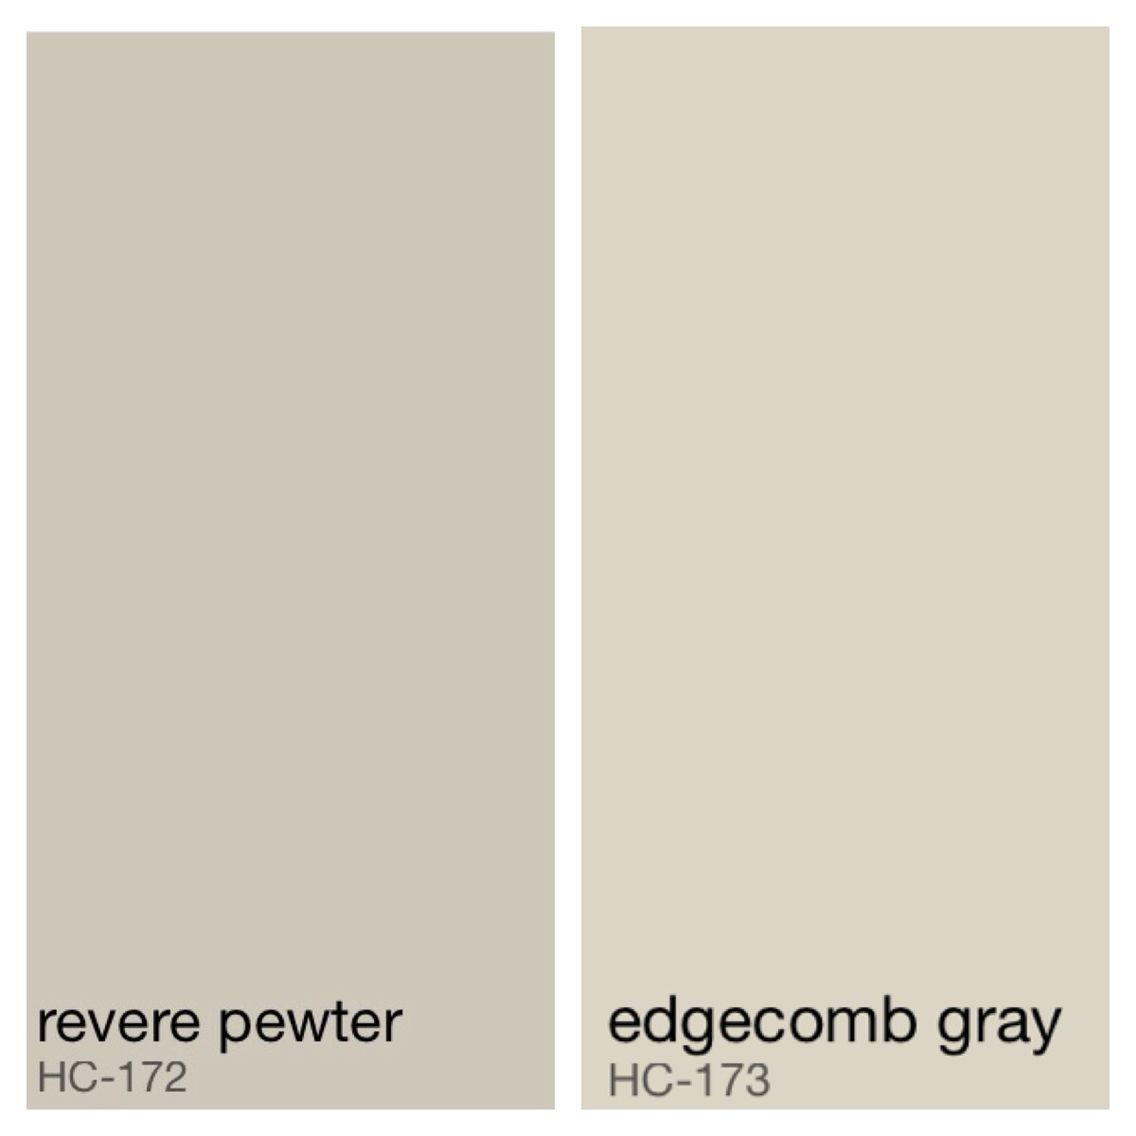 Benjamin Moore Masterbath Color Revere Pewter Walls Edgecomb Gray Ceiling Revere Pewter Room Paint Edgecomb Gray